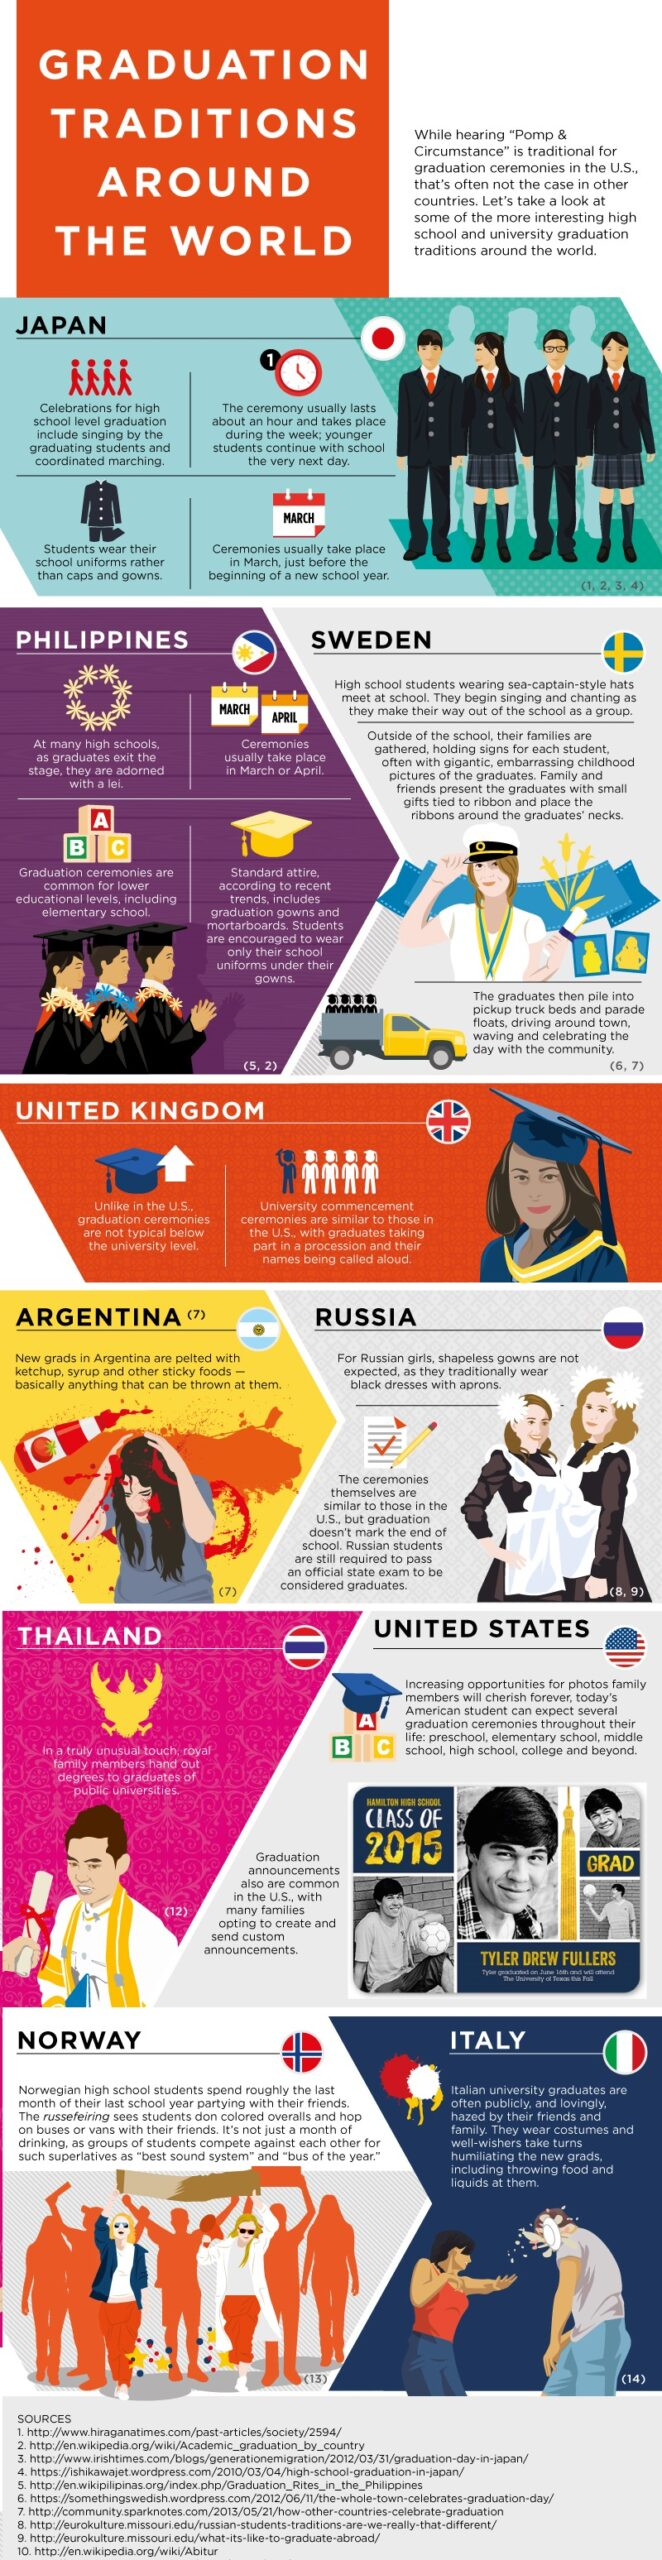 Infographic for the graduation traditions around the world